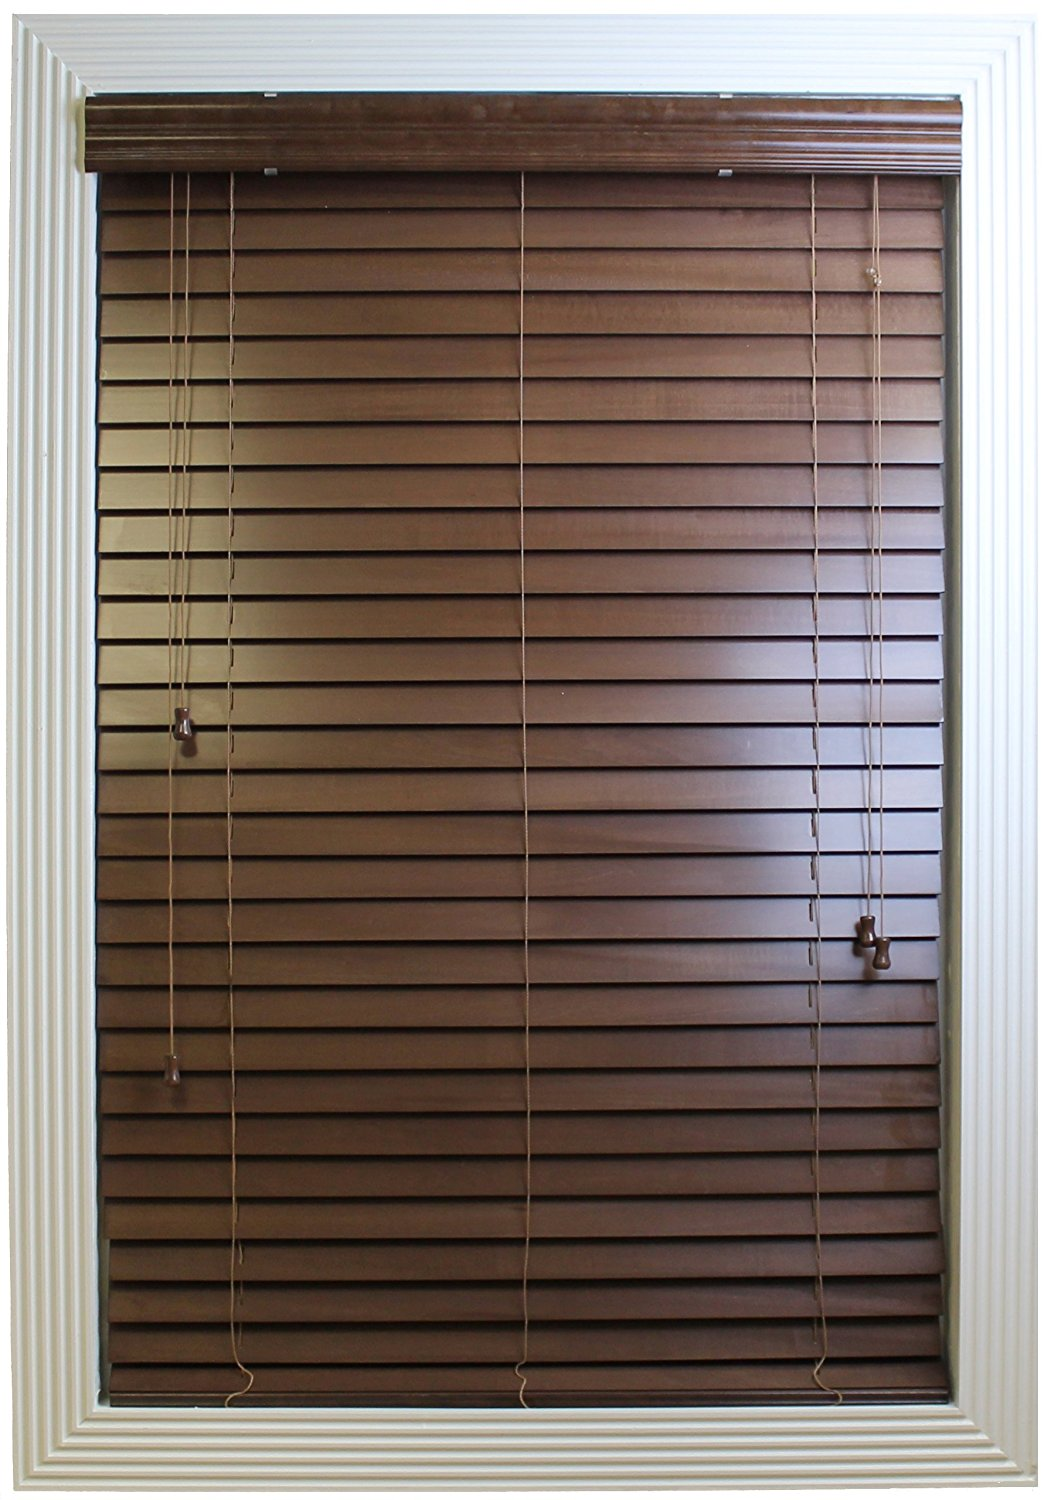 Calyx Interiors Real Wood Venetian Blind, 20-Inch Width by 72-Inch Height, Pecan